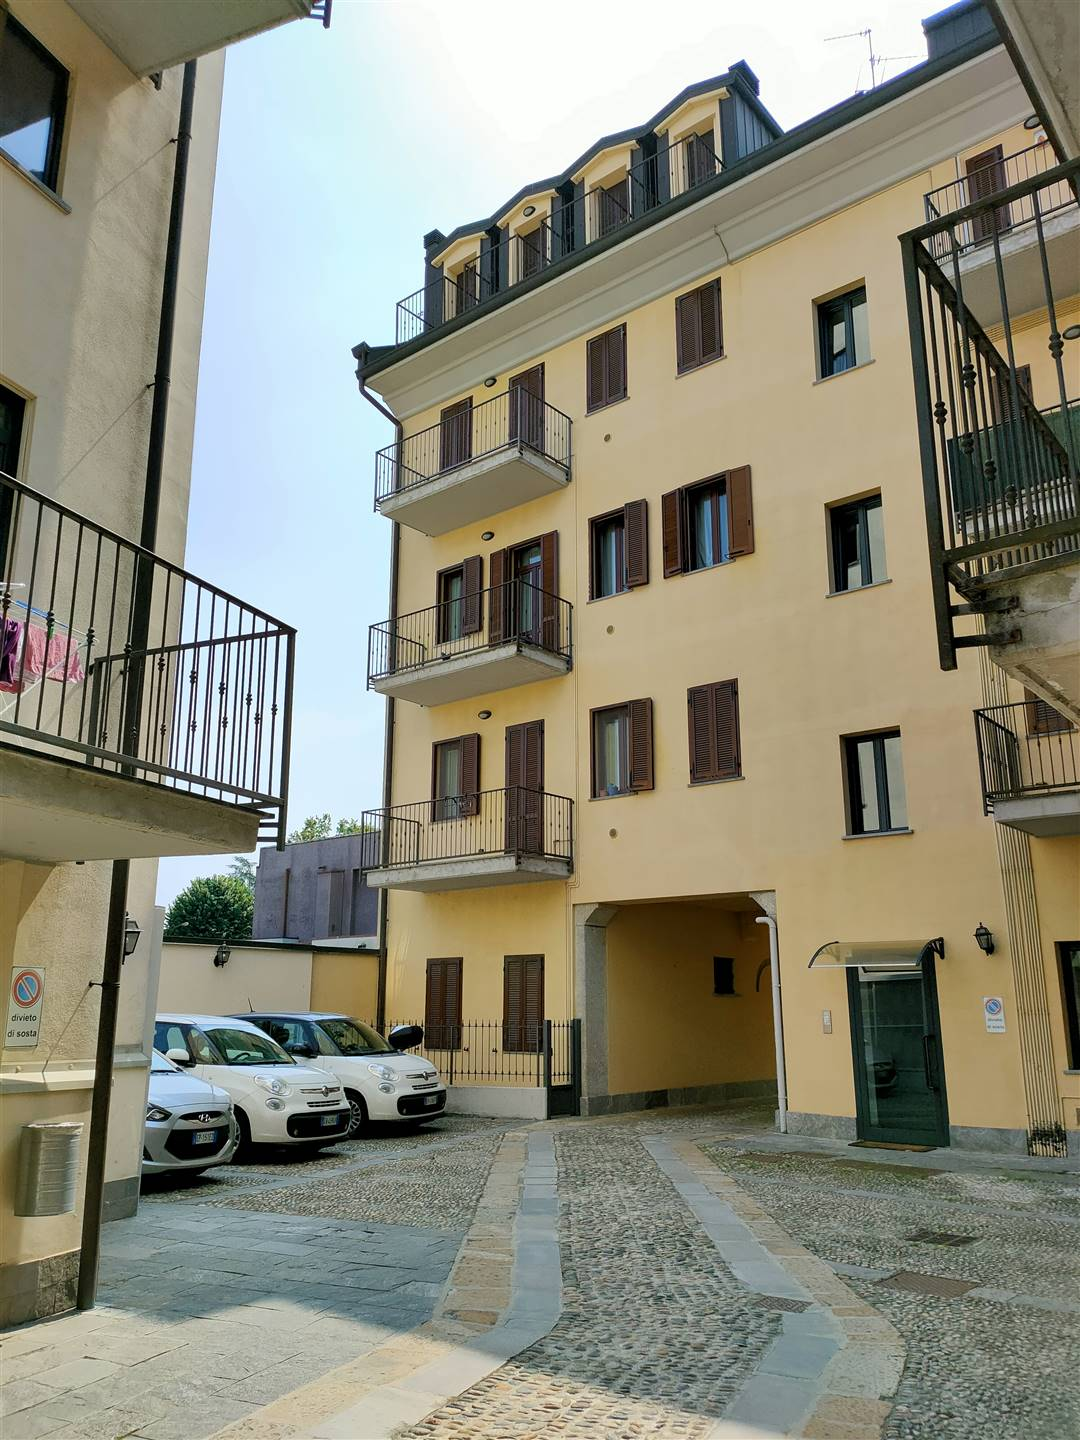 SEMICENTRO, LODI, Apartment for sale, Good condition, Energetic class: D, placed at 2° on 4, composed by: 2 Rooms, Show cooking, , 1 Bedroom, 1